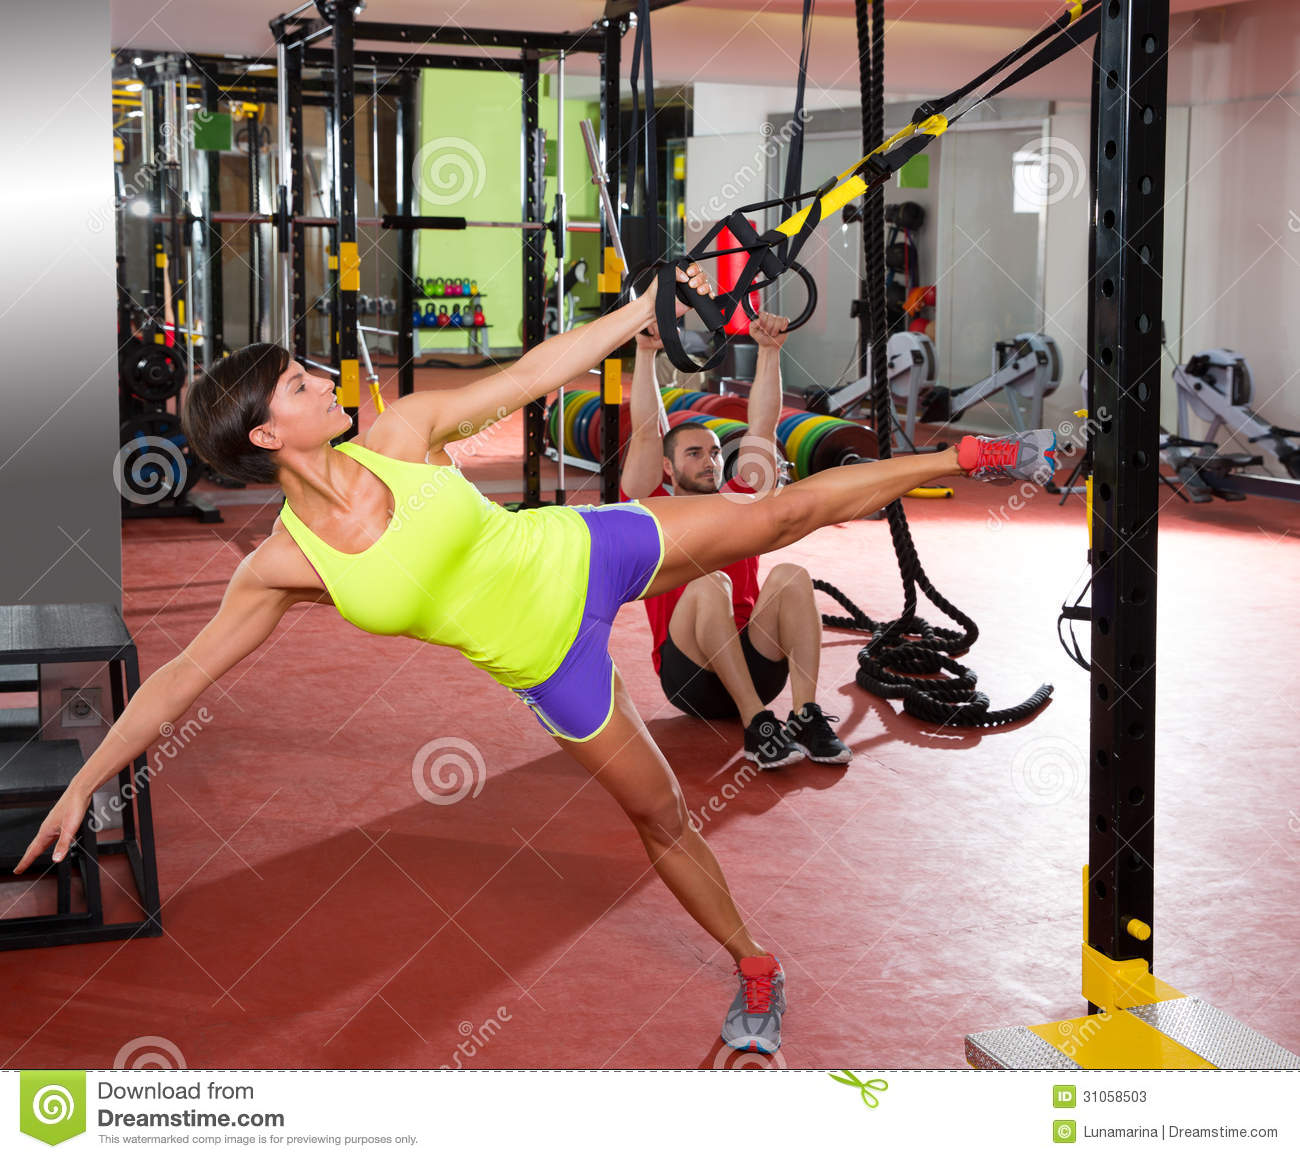 Women S Crossfit Workouts: Fitness TRX Training Exercises At Gym Woman And Man Stock